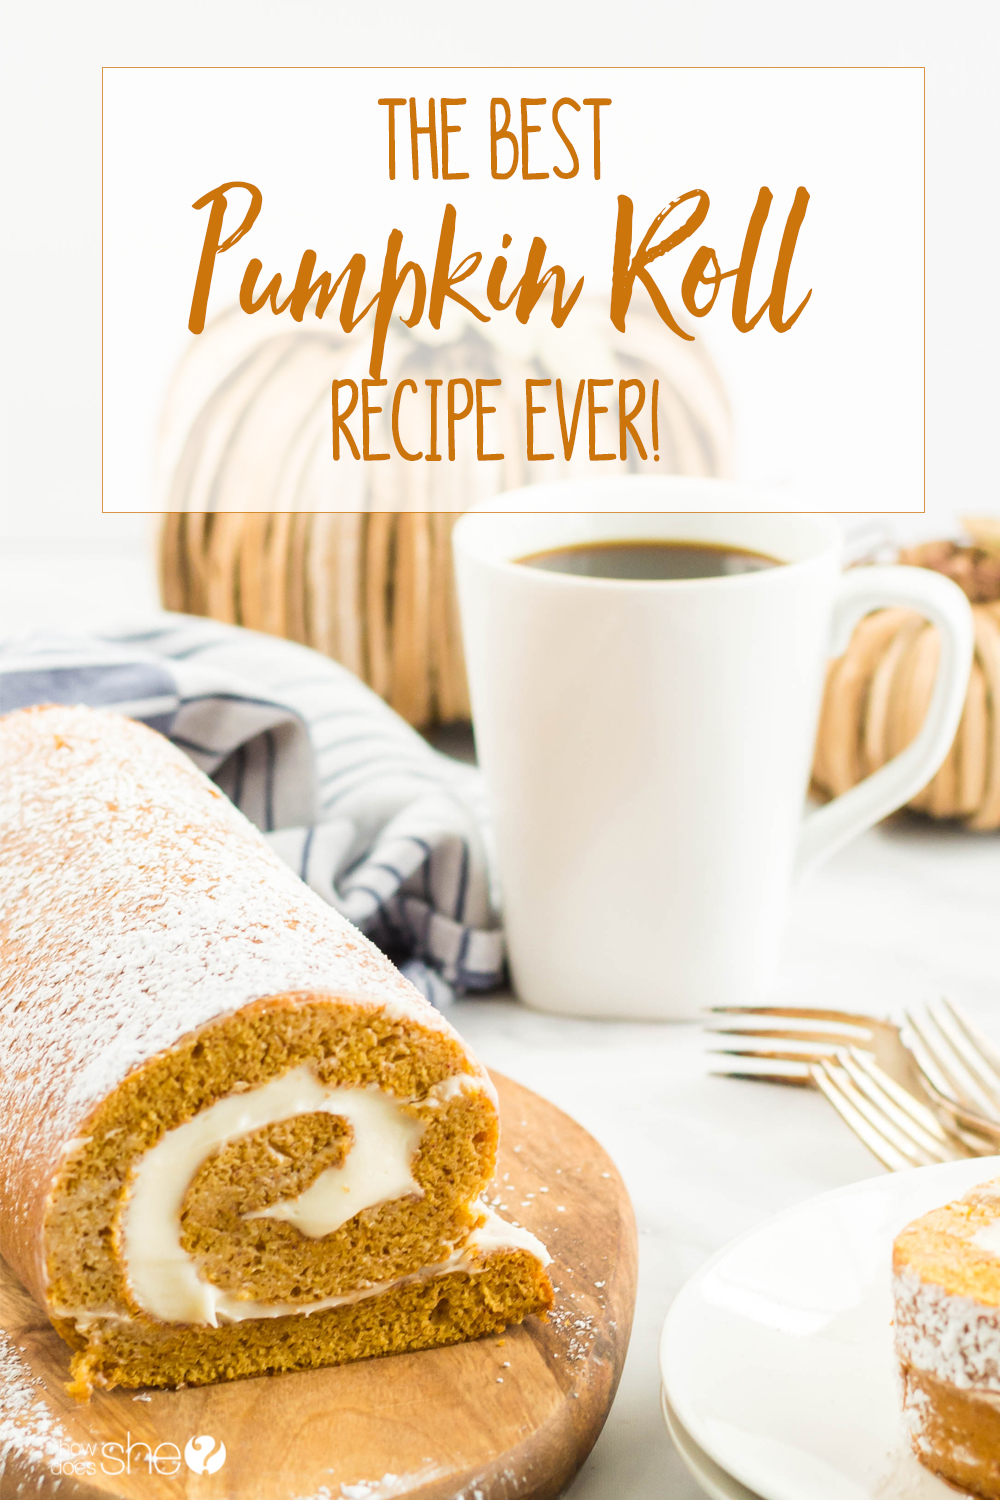 The BEST Pumpkin Roll Recipe Ever